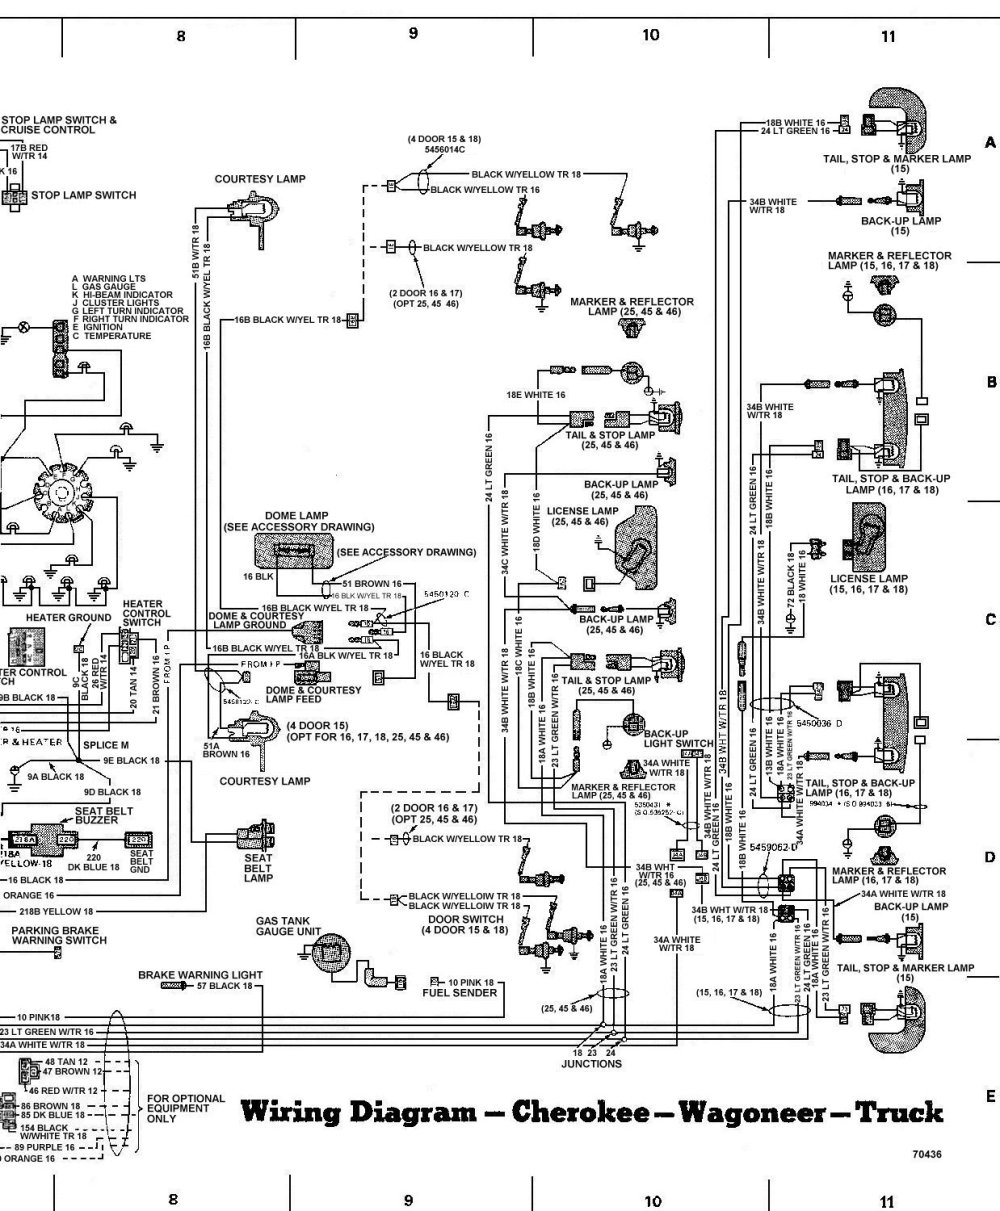 medium resolution of amc 360 wiring diagram wiring diagram schematics jeep grand cherokee engine diagram amc 360 wiring diagram